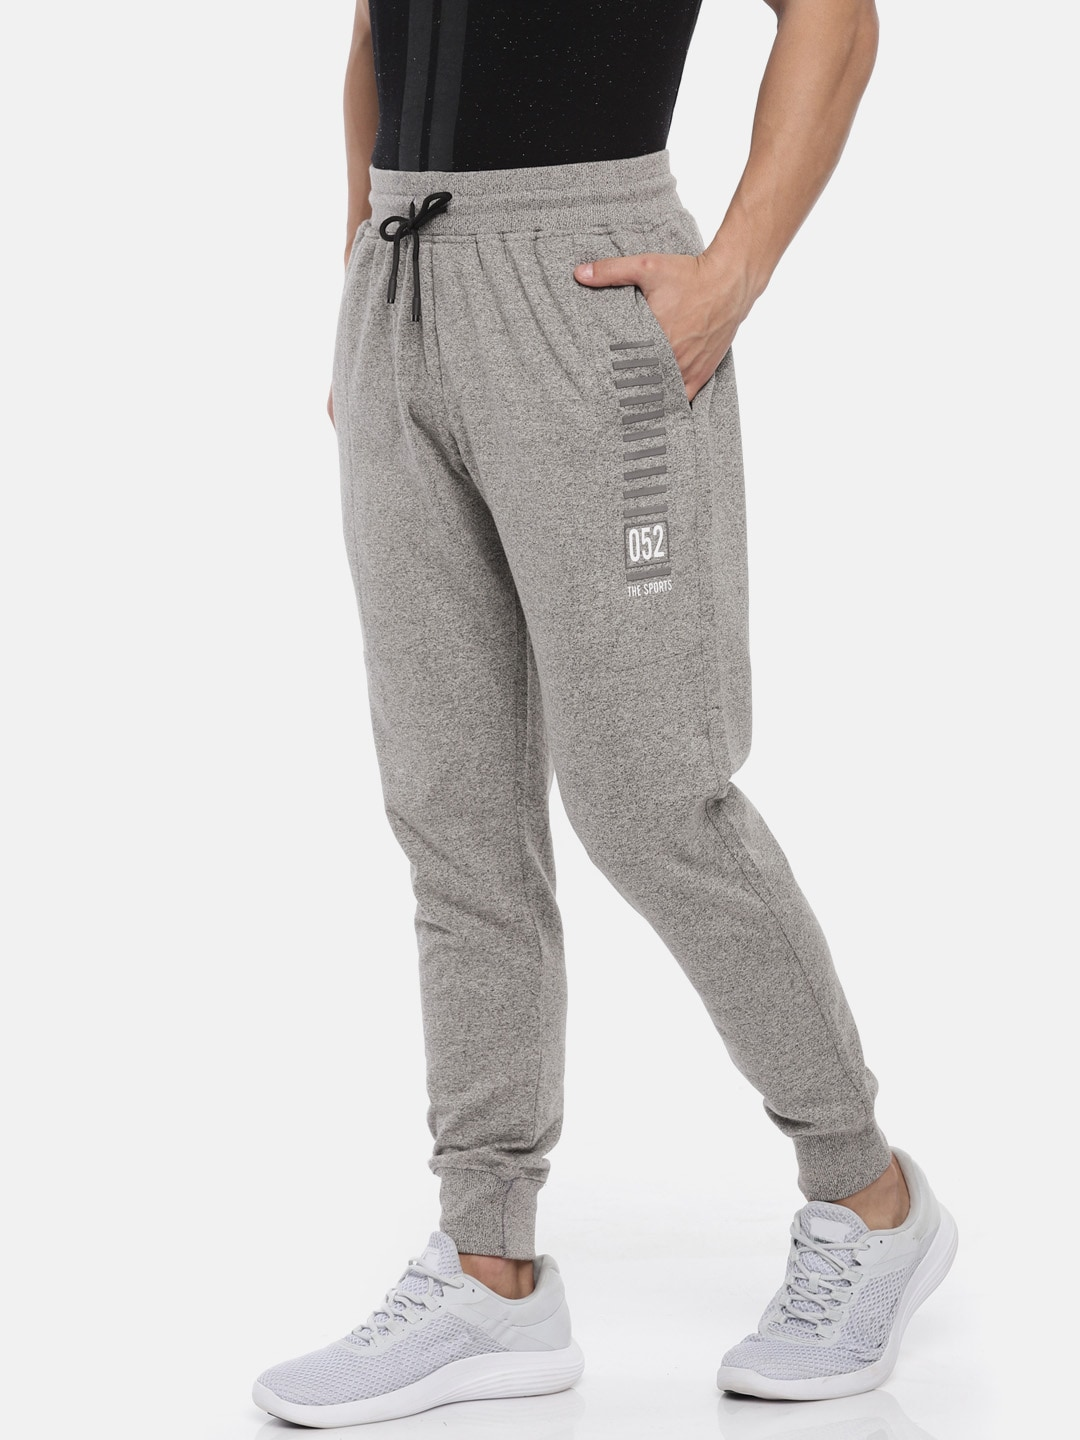 70e5a0729fa4 Sports Track Pants Tops - Buy Sports Track Pants Tops online in India